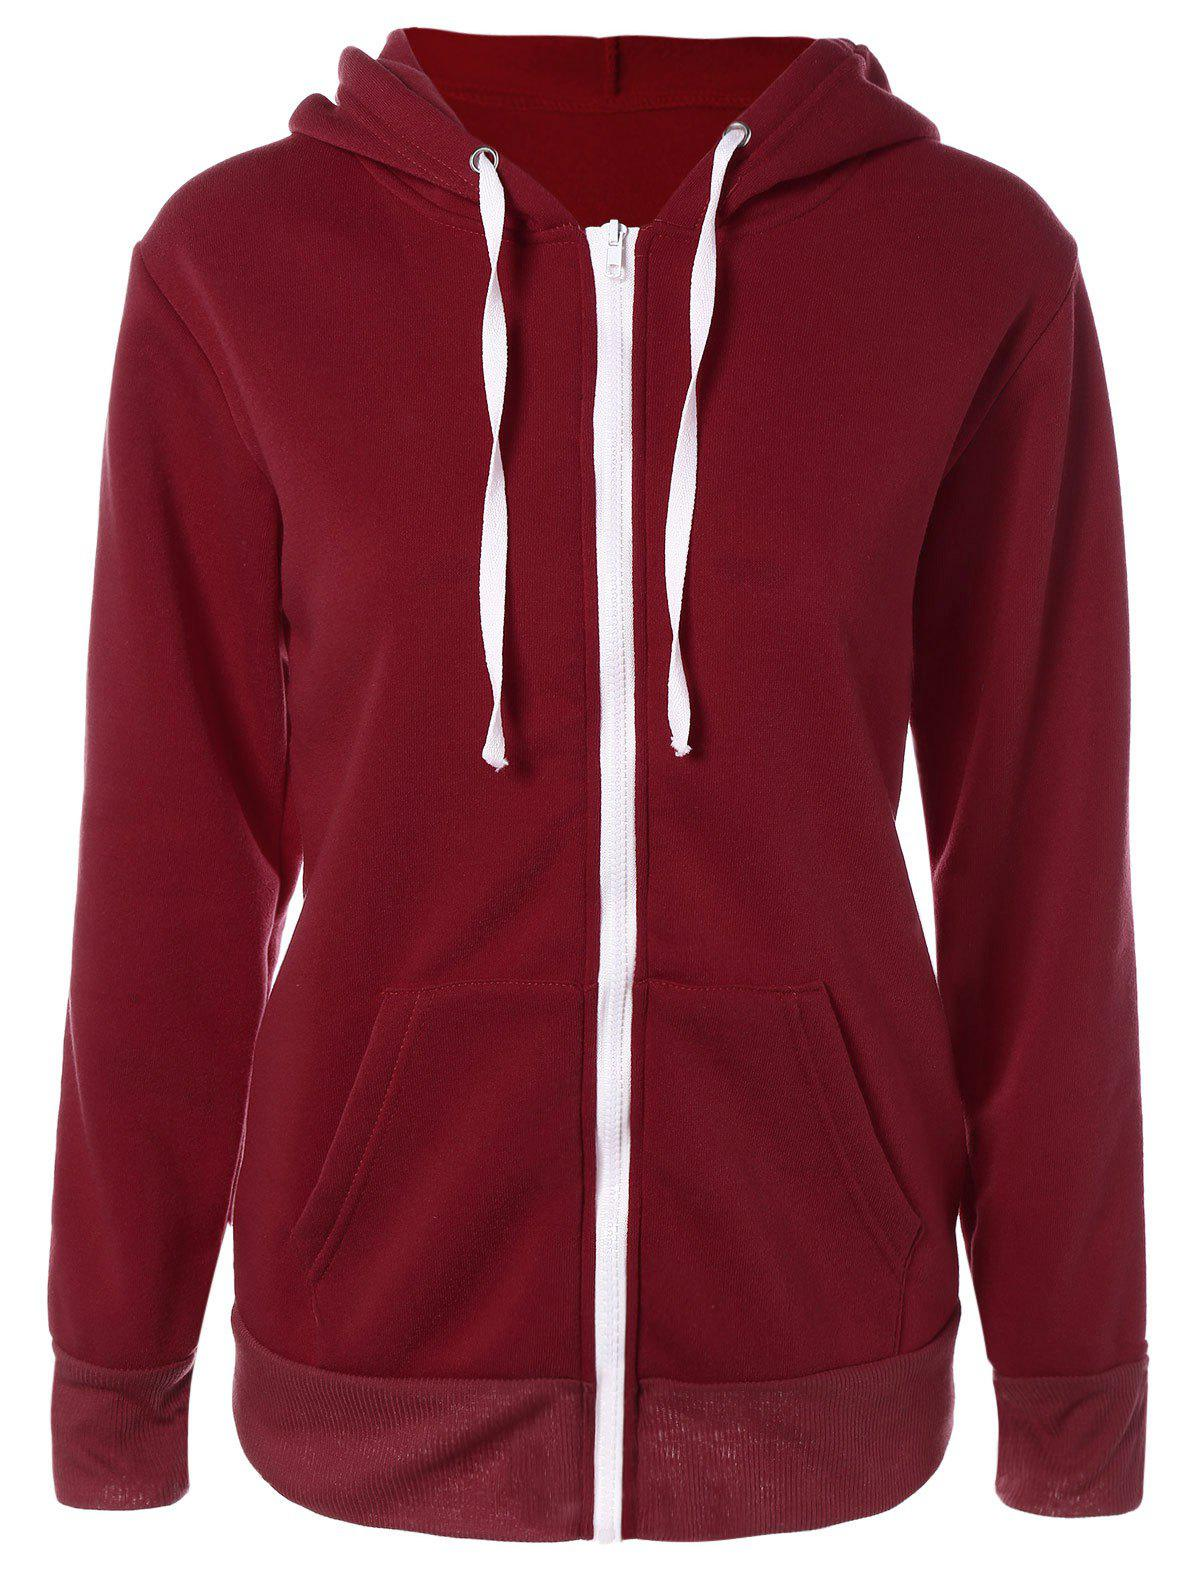 Solid Color Zip Up Fleece Warm Hoodie - WINE RED 2XL